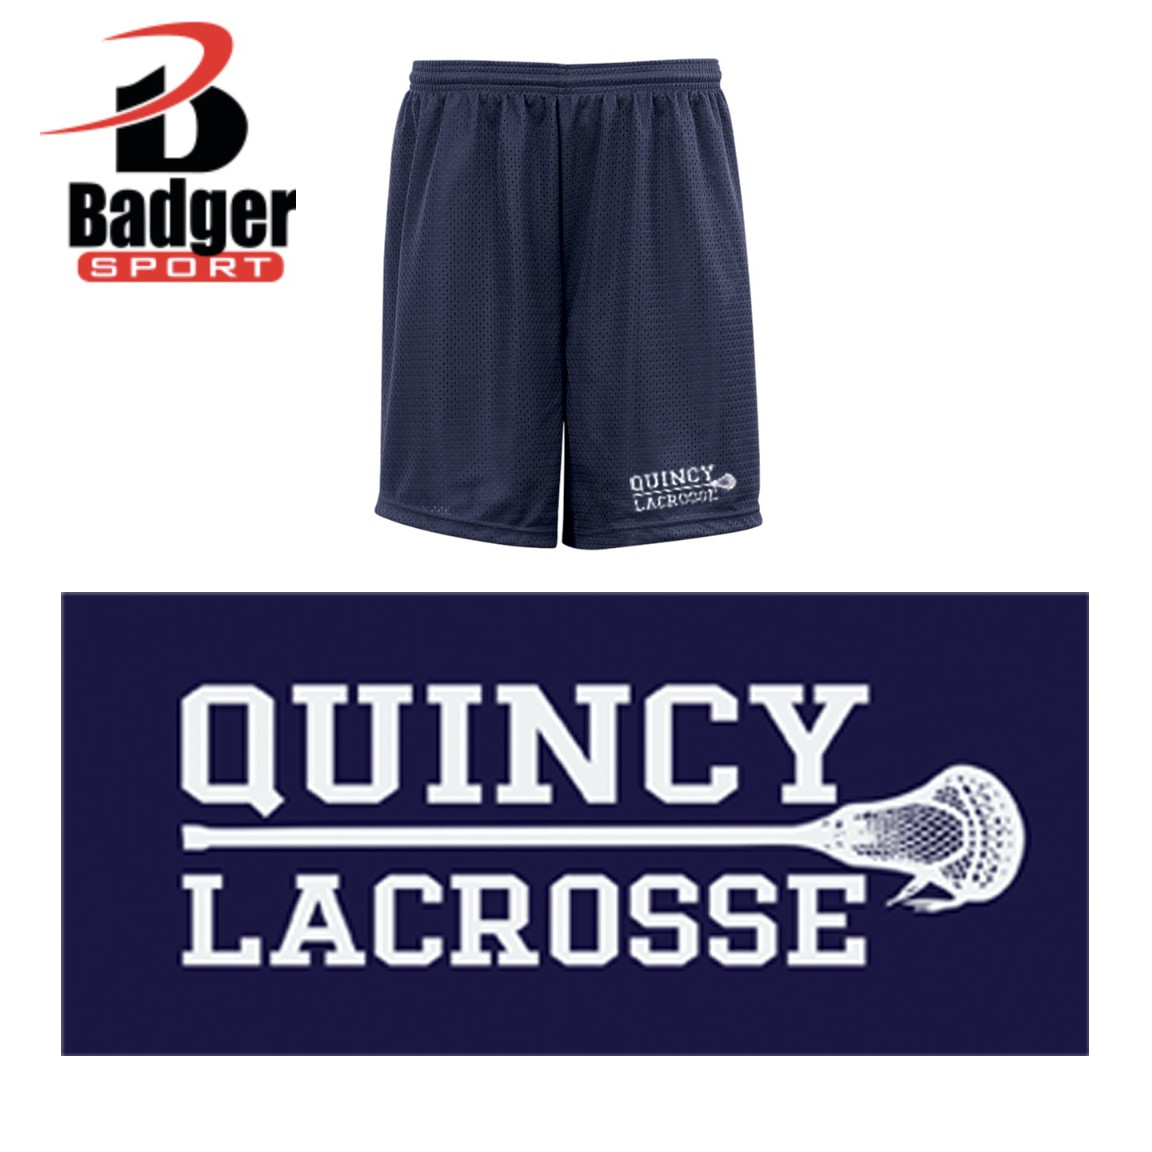 Quincy Lacrosse Badger Mesh/Tricot 7 Inch Short